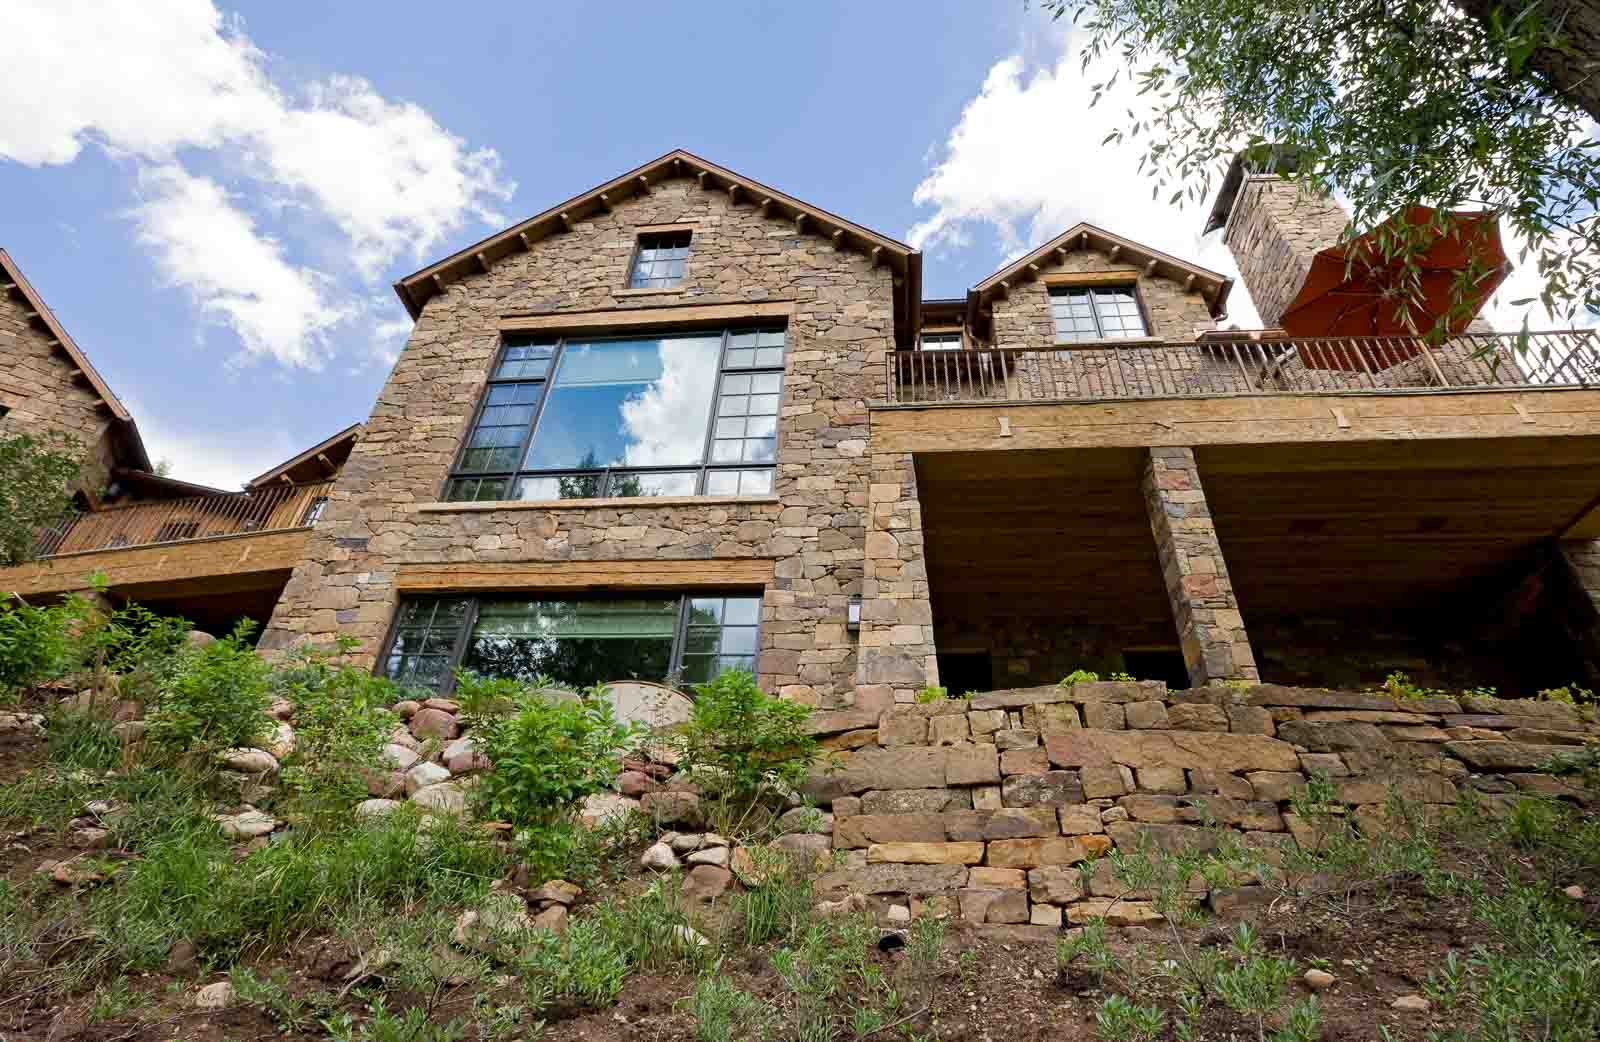 Luxury cheateau contractor in Aspen